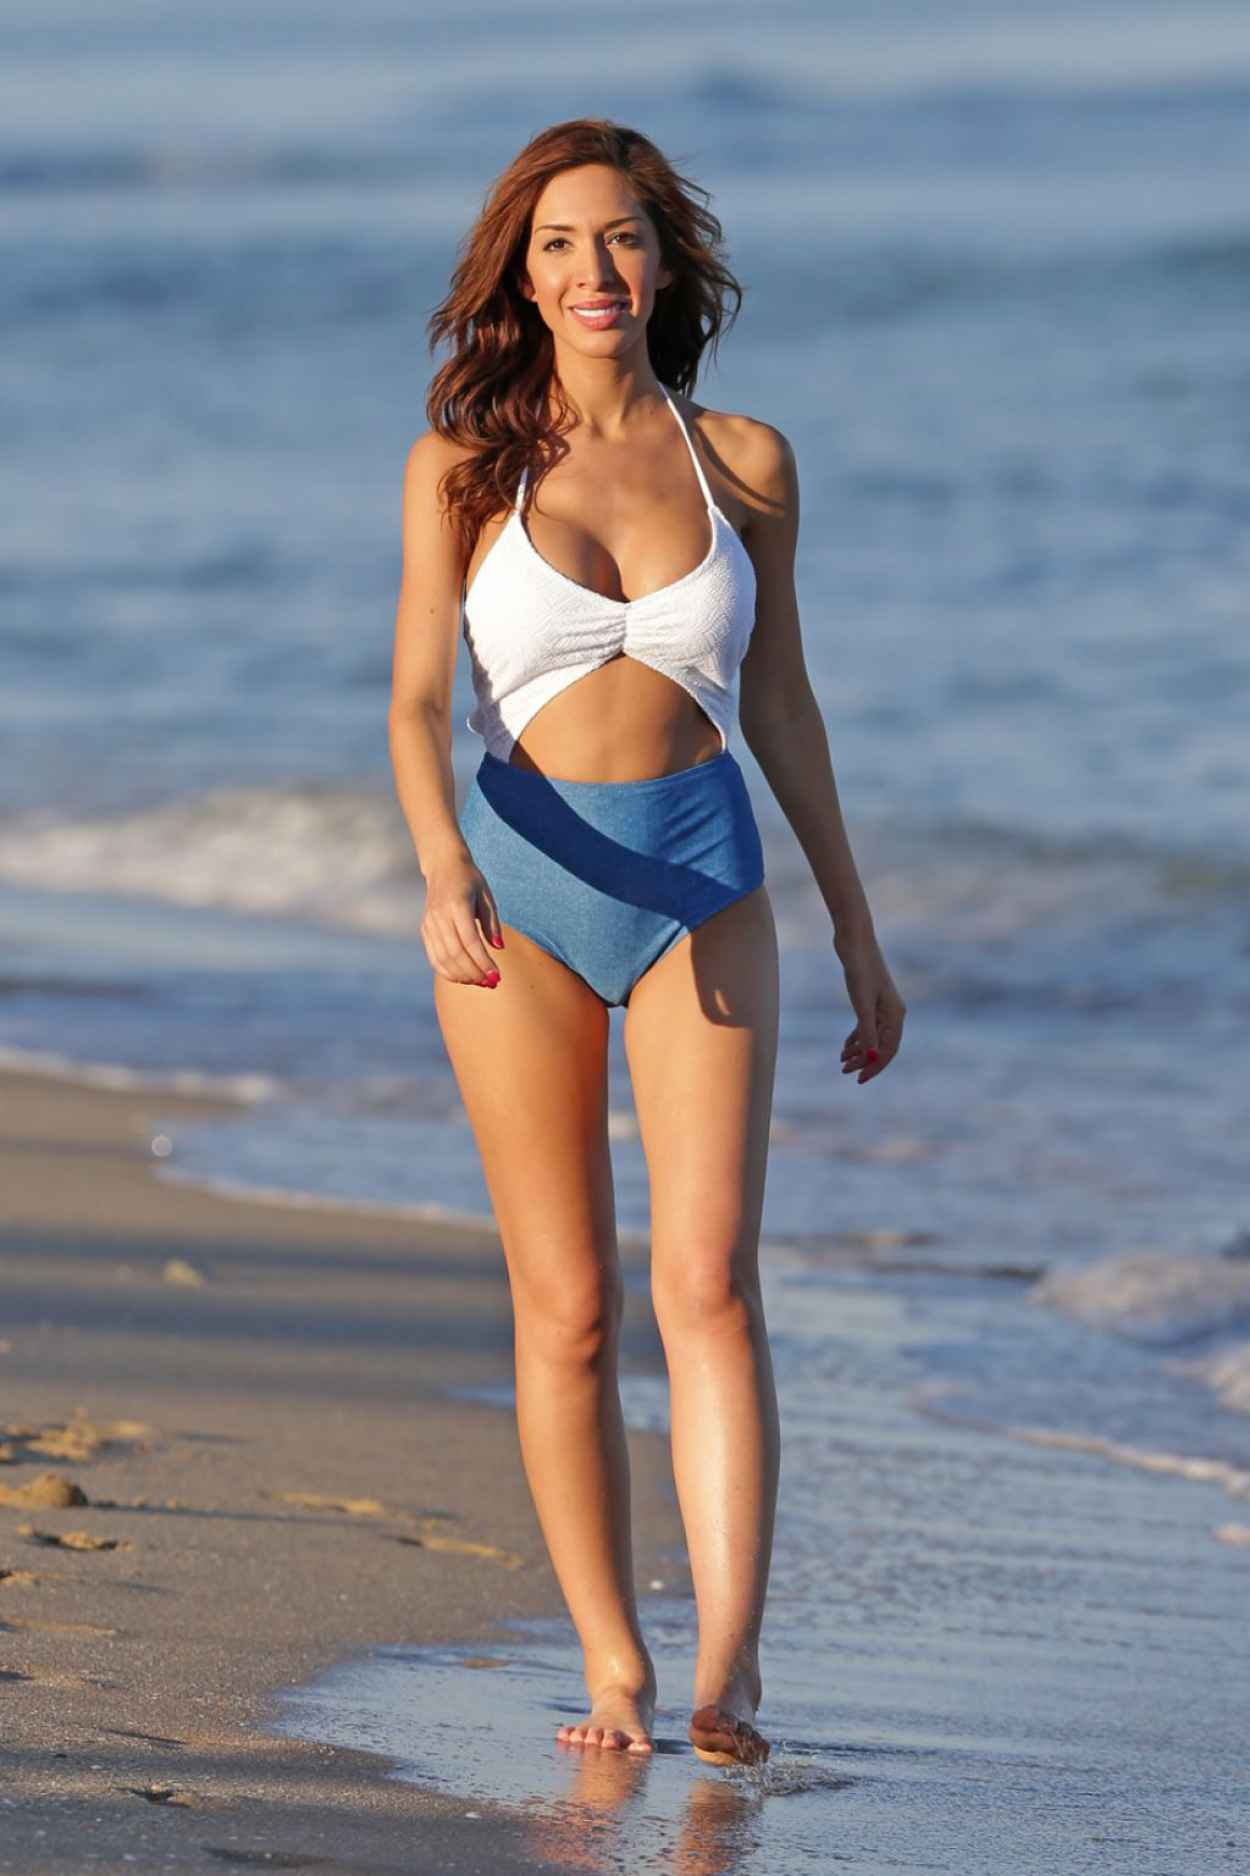 Farrah Abraham In a Swimsuit at The Beach In Miami, January 2015-4